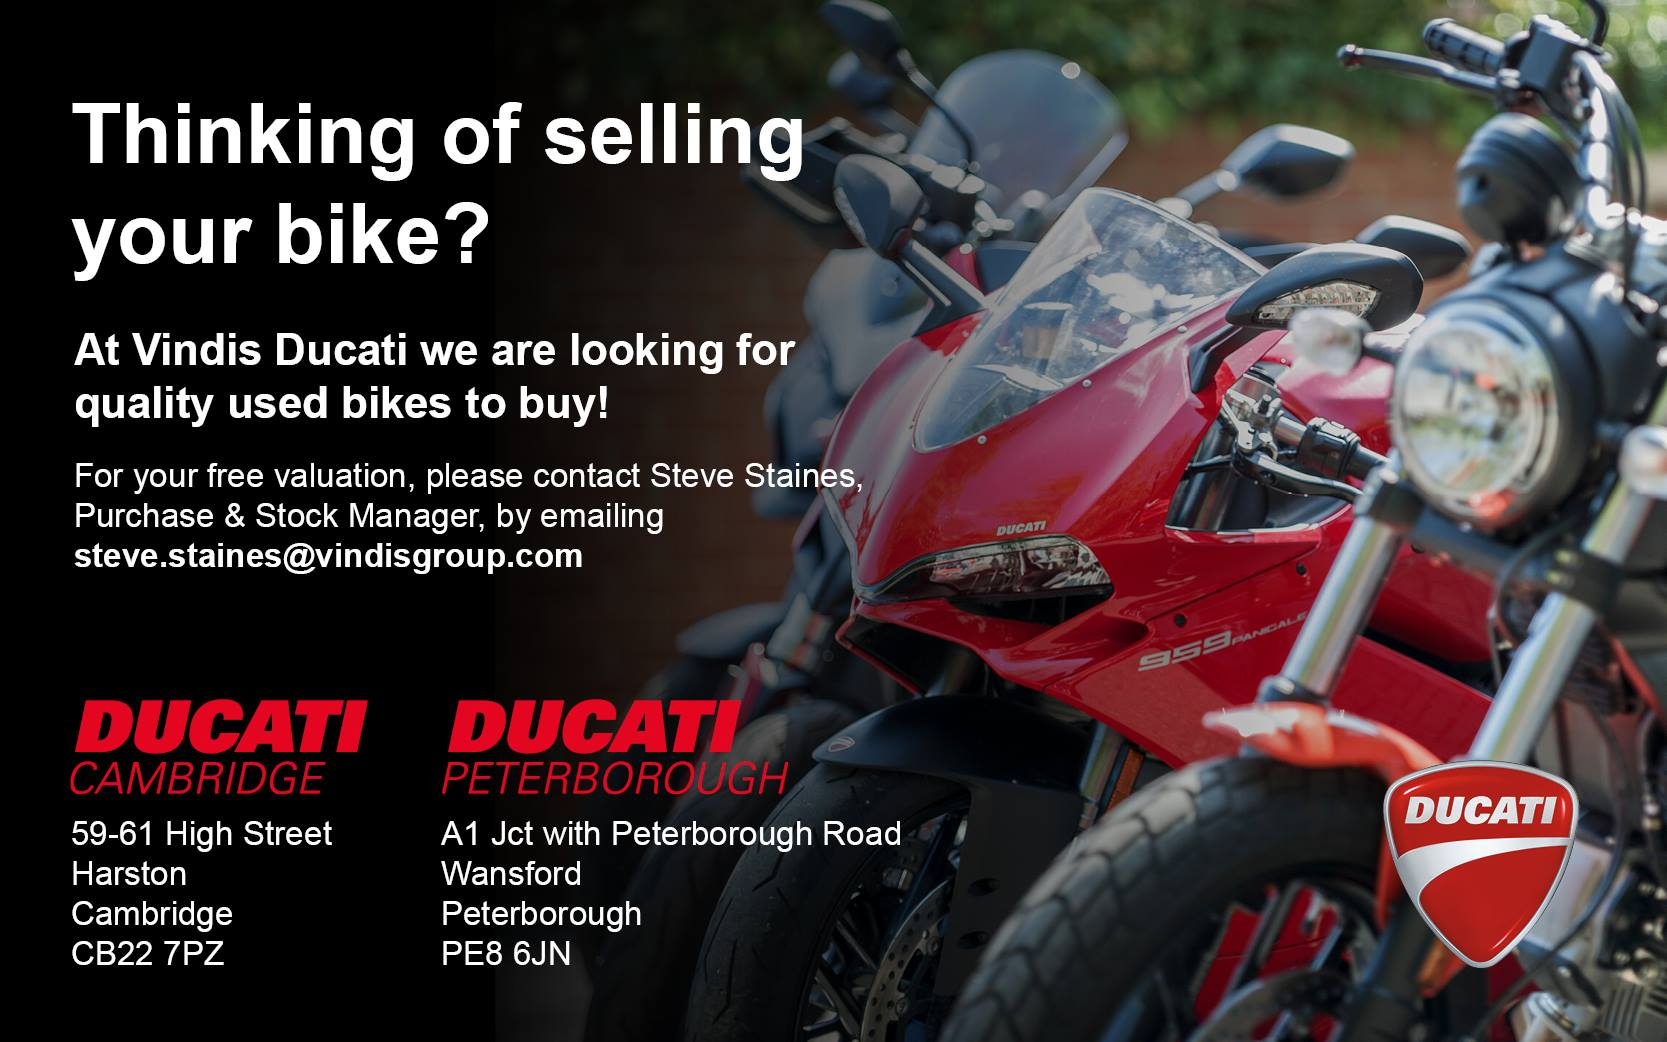 Thinking of selling your bike? Speak to the team at Vindis Ducati Cambridge or Peterborough.